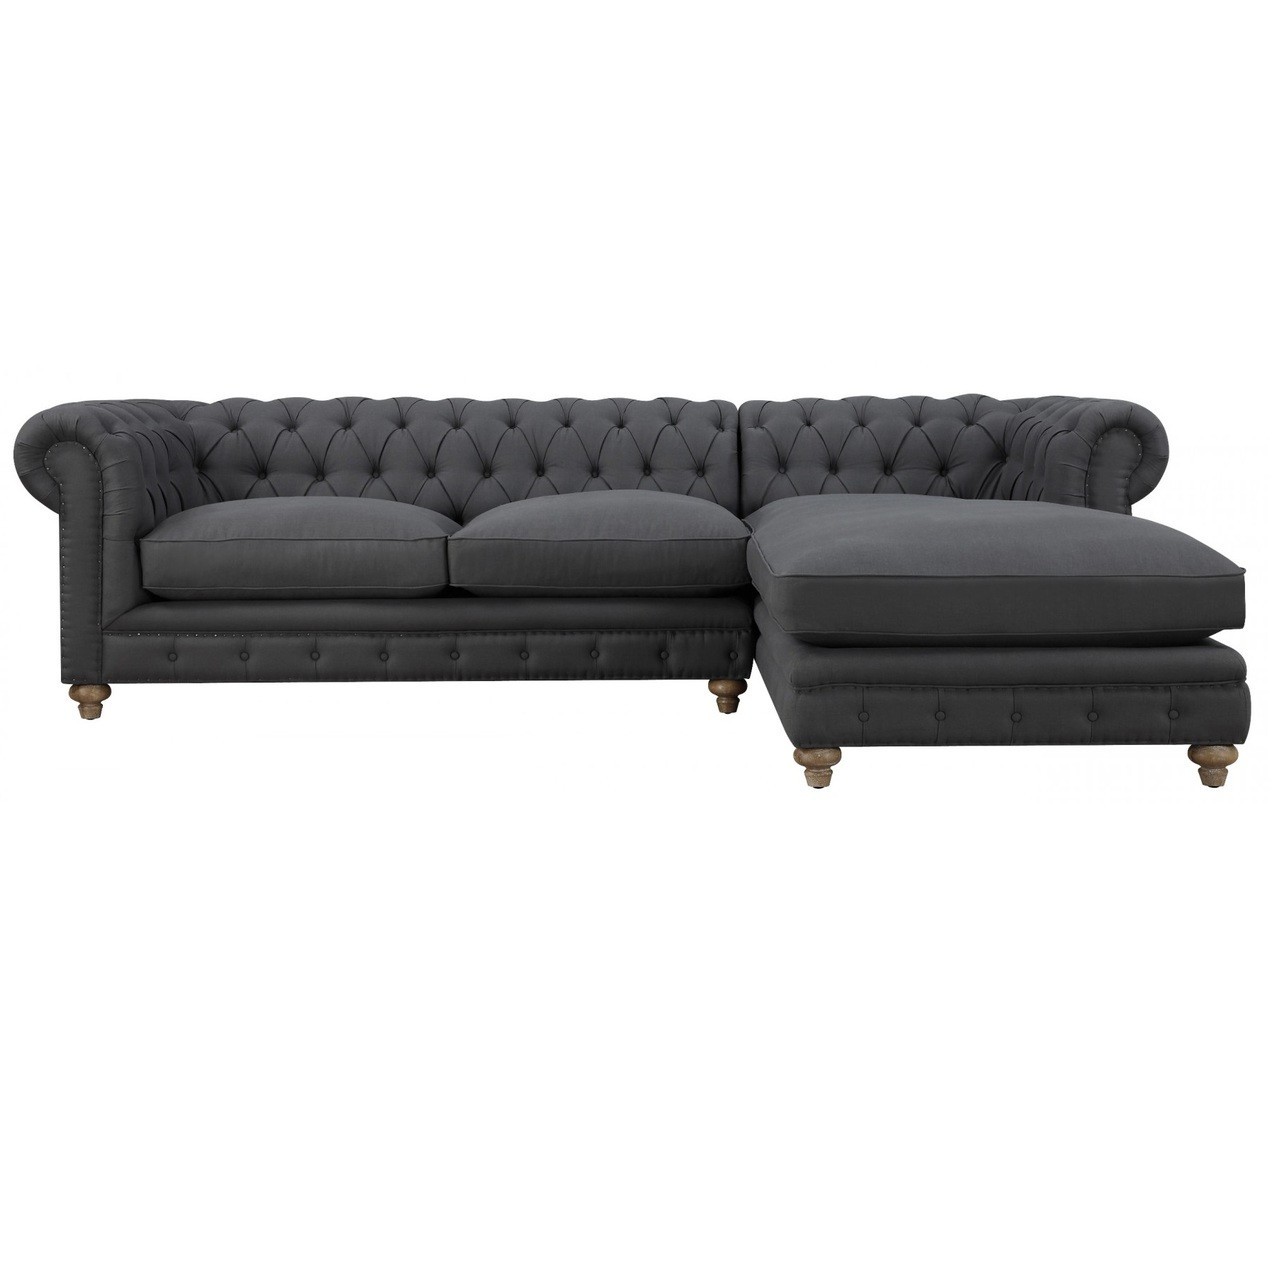 Oxford Grey Linen Upholstered Chesterfield Sectional Zin Home